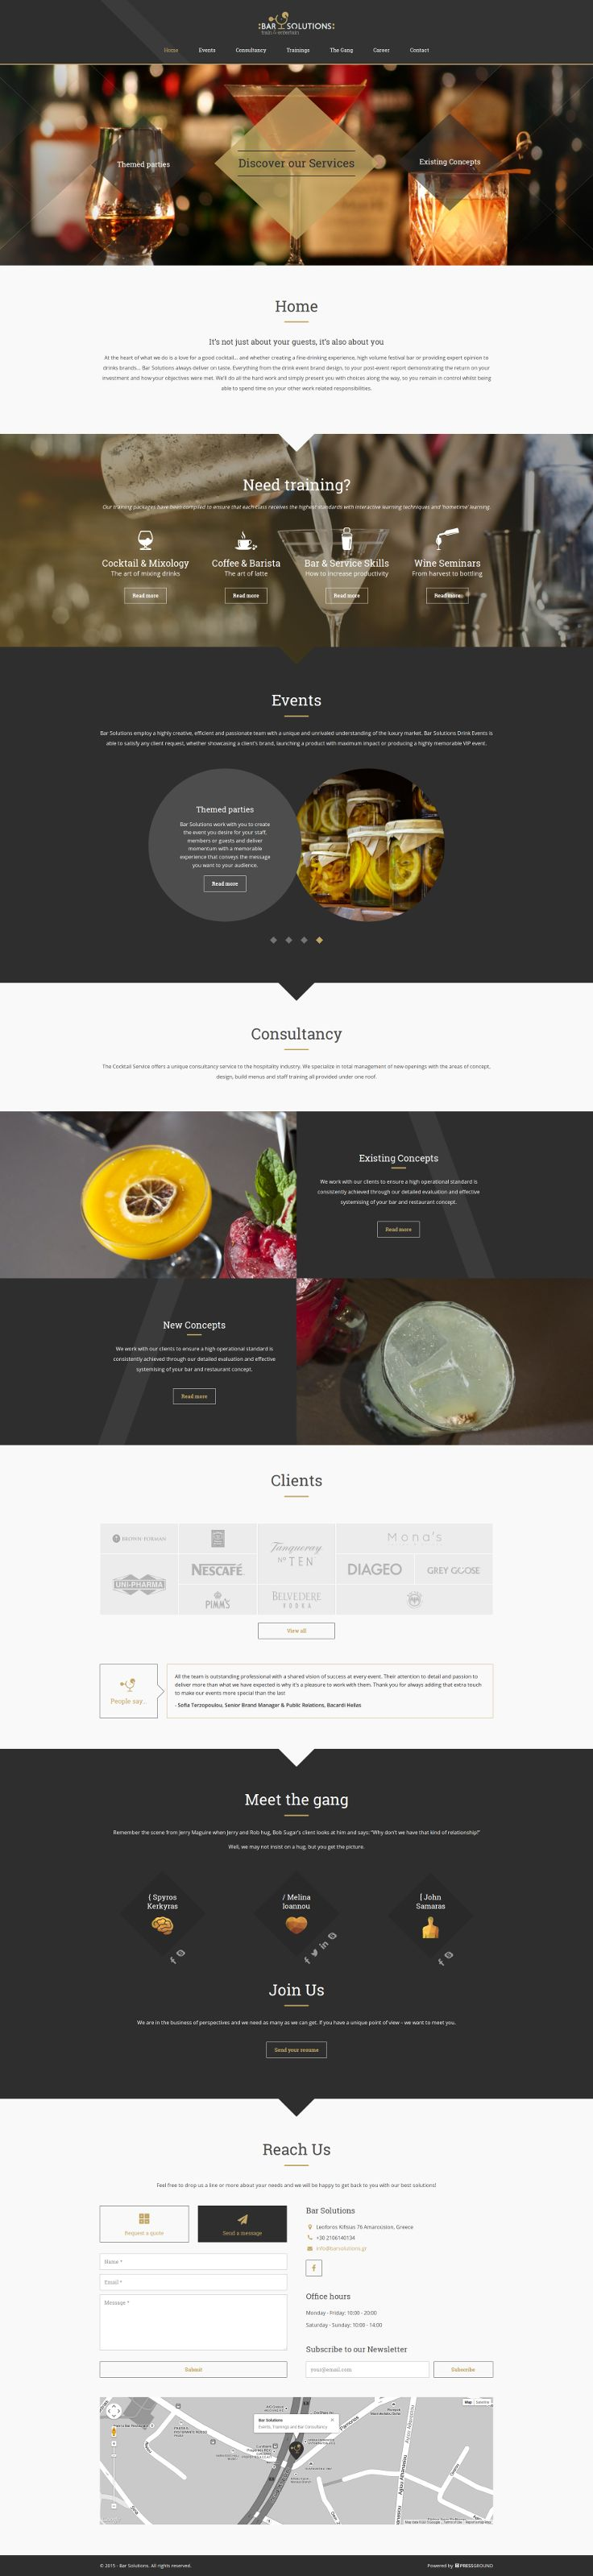 A particularly beautiful #web #design powered by #Pressground and delivered by the #Hardpixel #team for #BarSolutions #Greece.